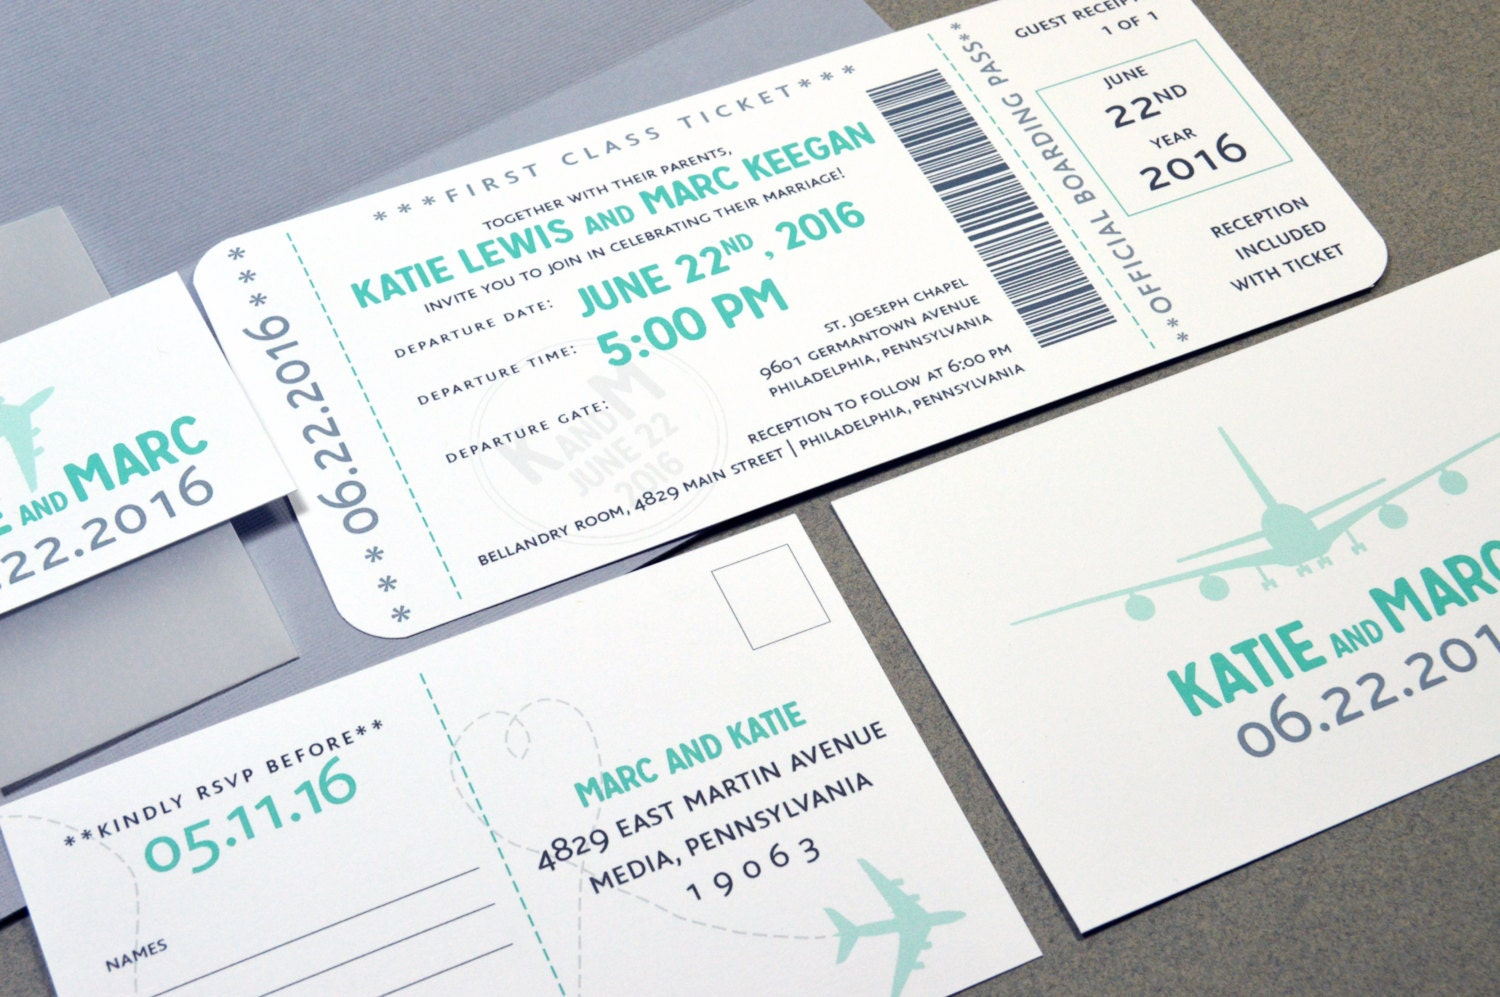 Plane ticket invite – Invitation Ticket